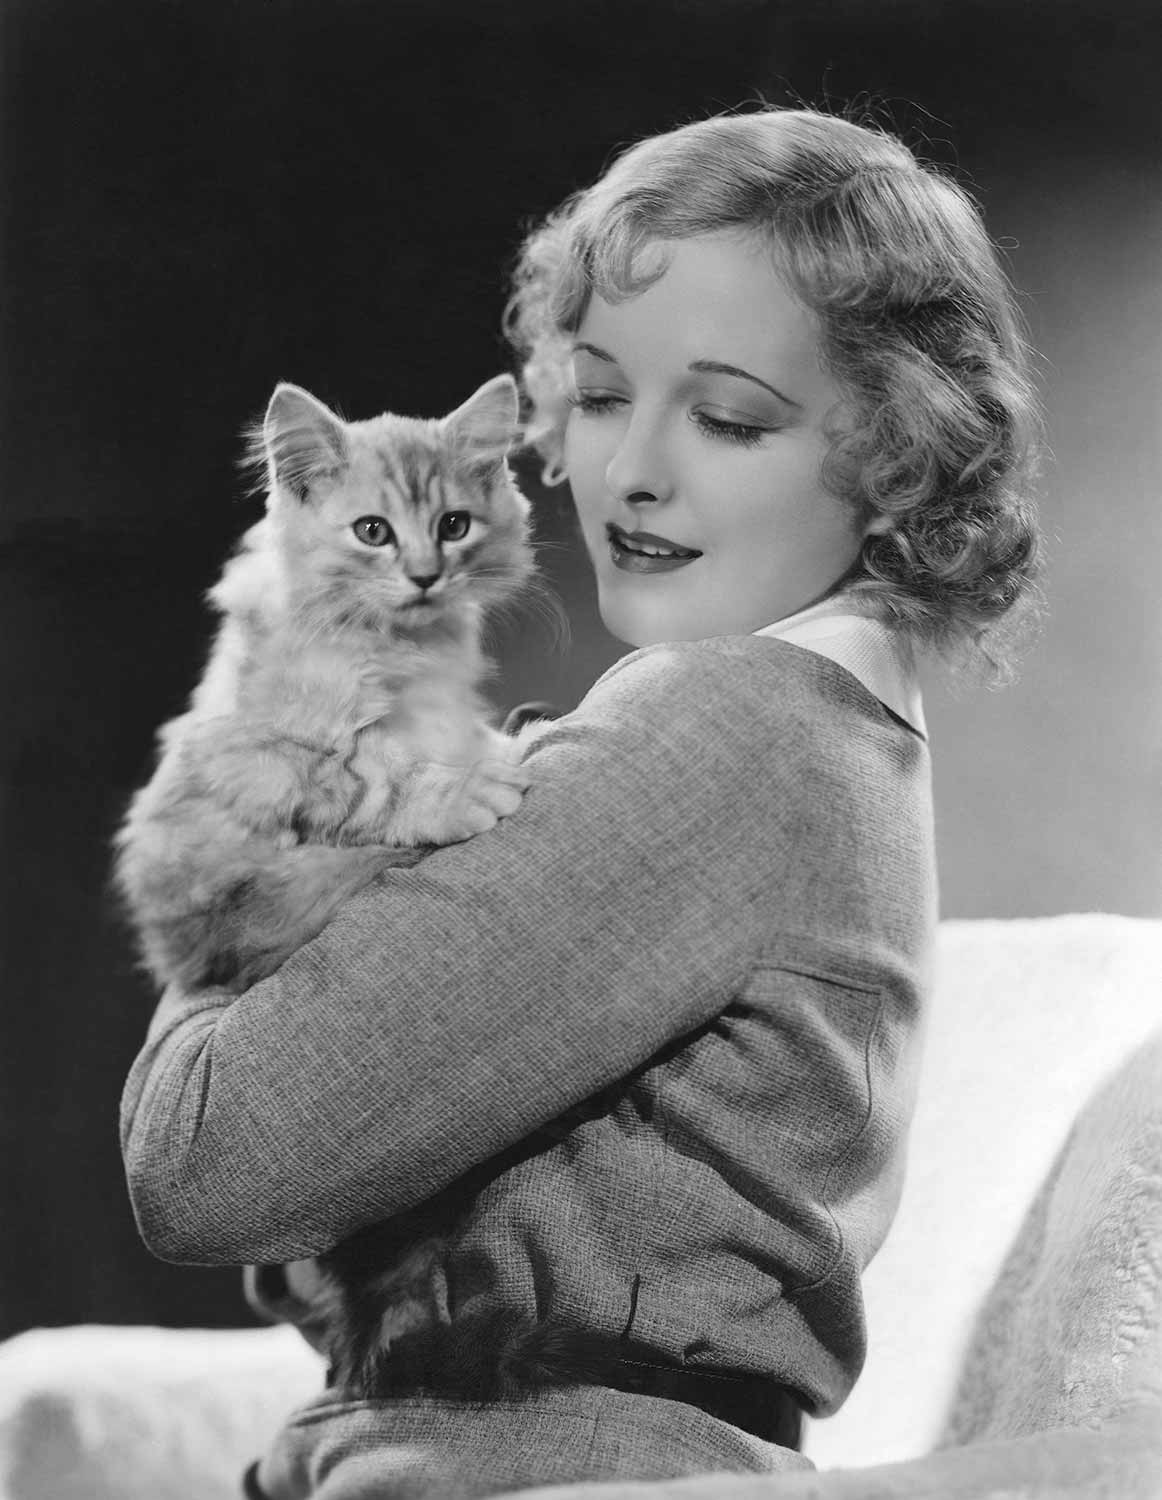 Vintage picture of Woman and a Cat